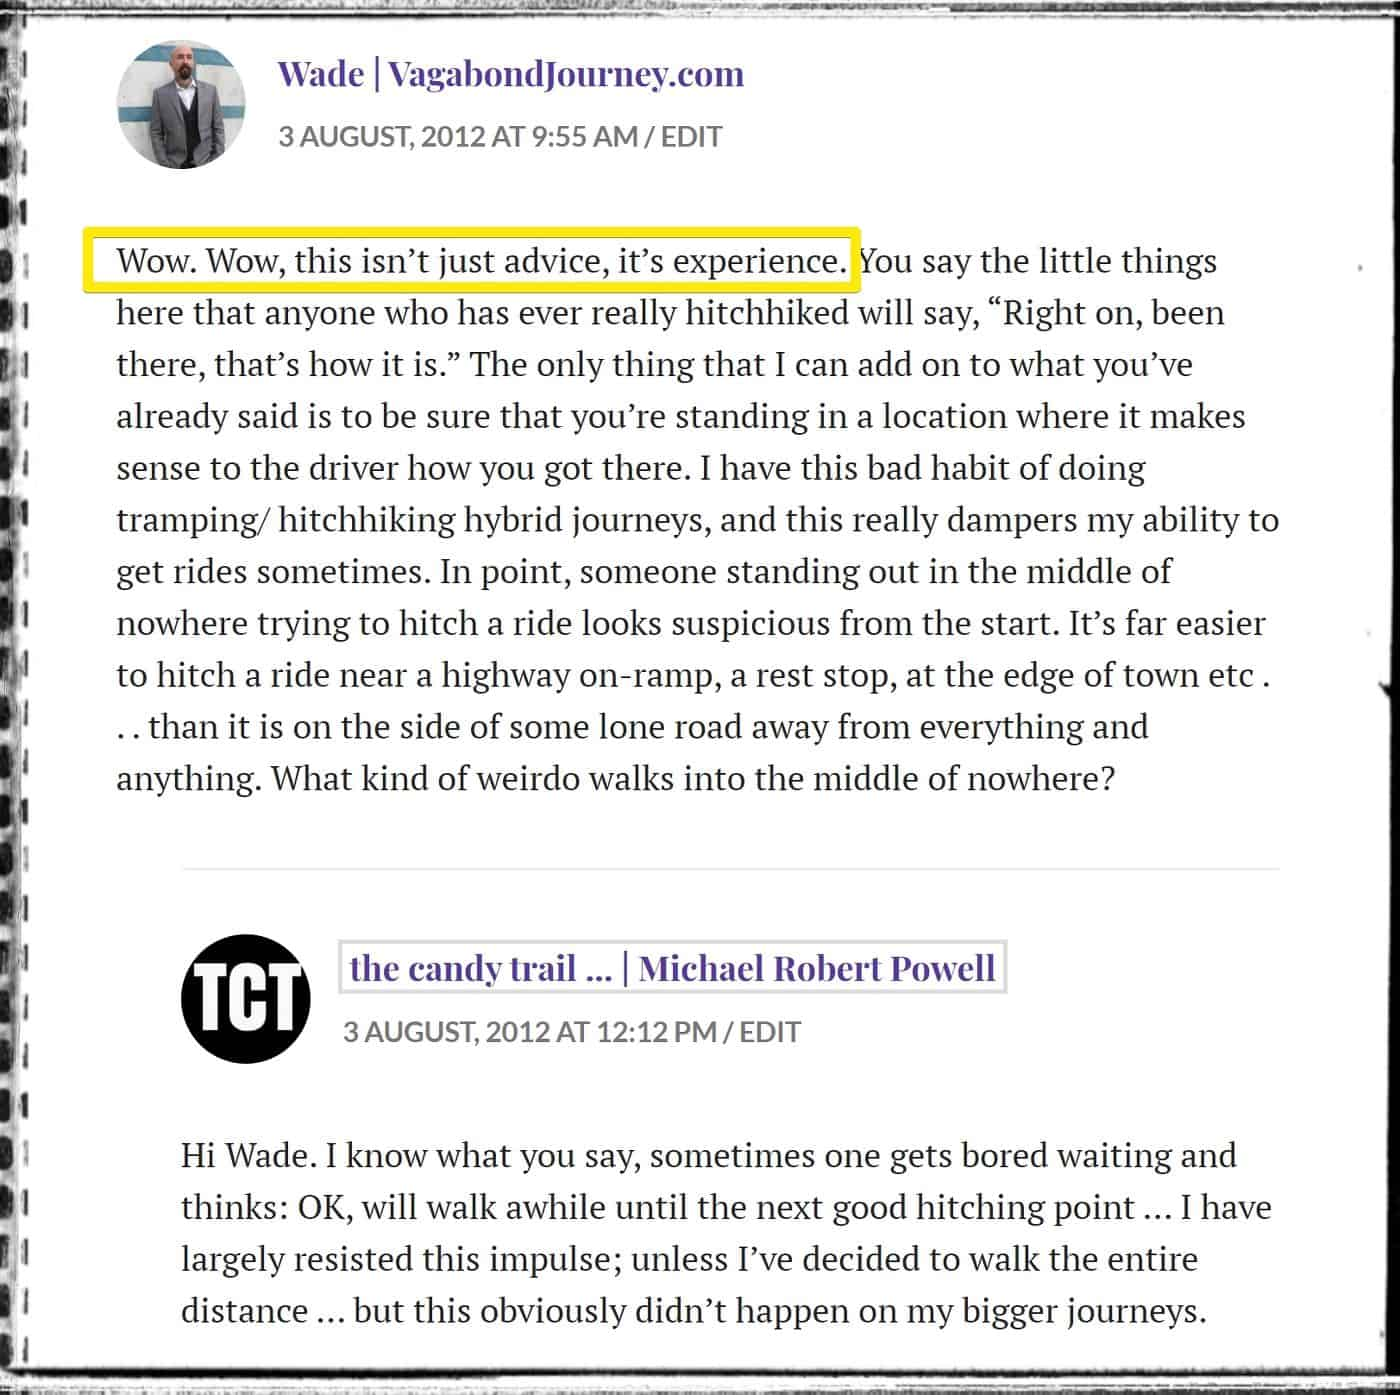 How-to-hitchhike-ANYWHERE-THE-CANDY-TRAIL-blog-comments